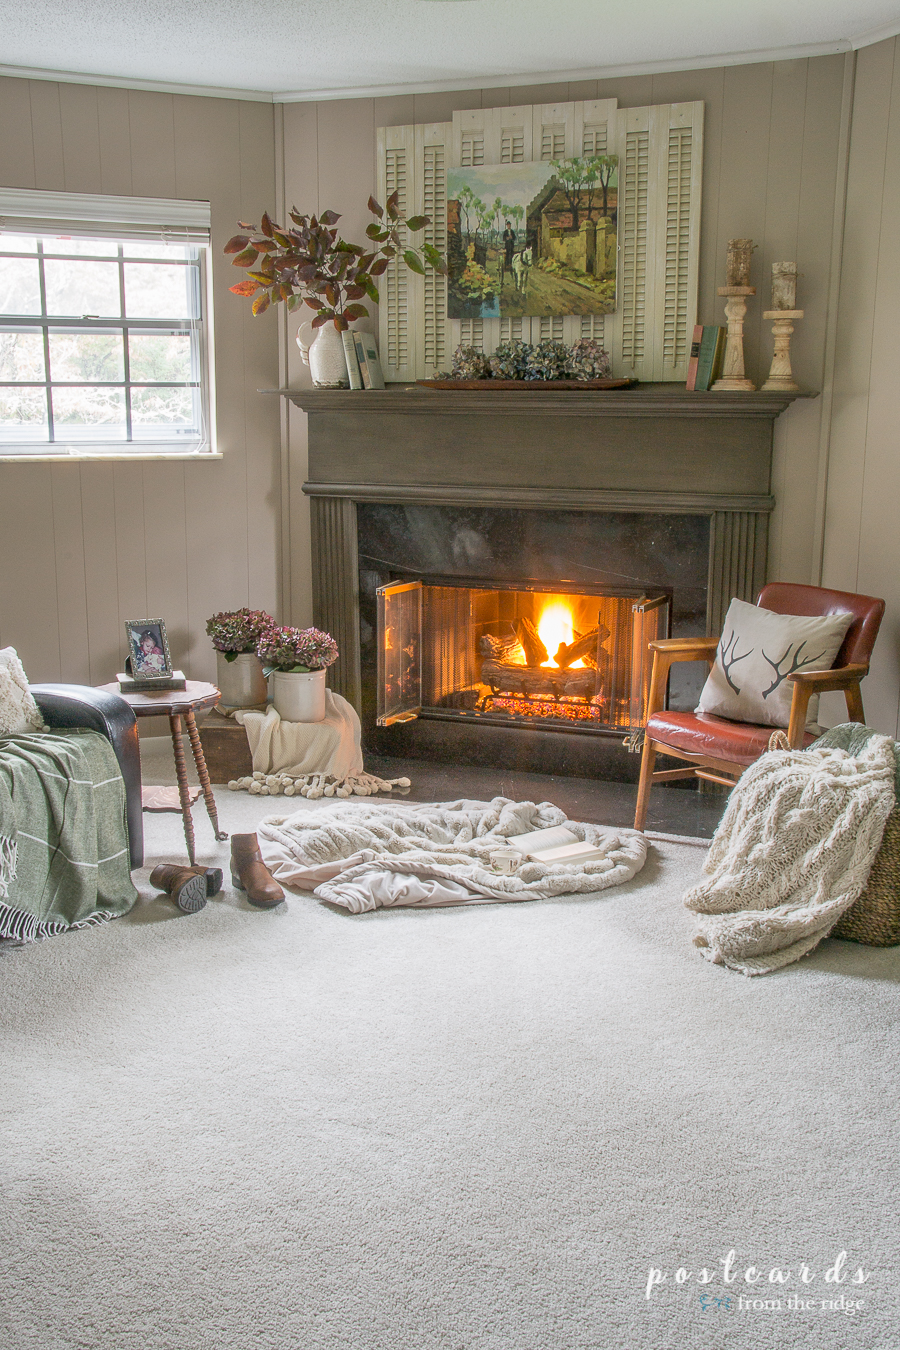 cozy room with fireplace and carpet